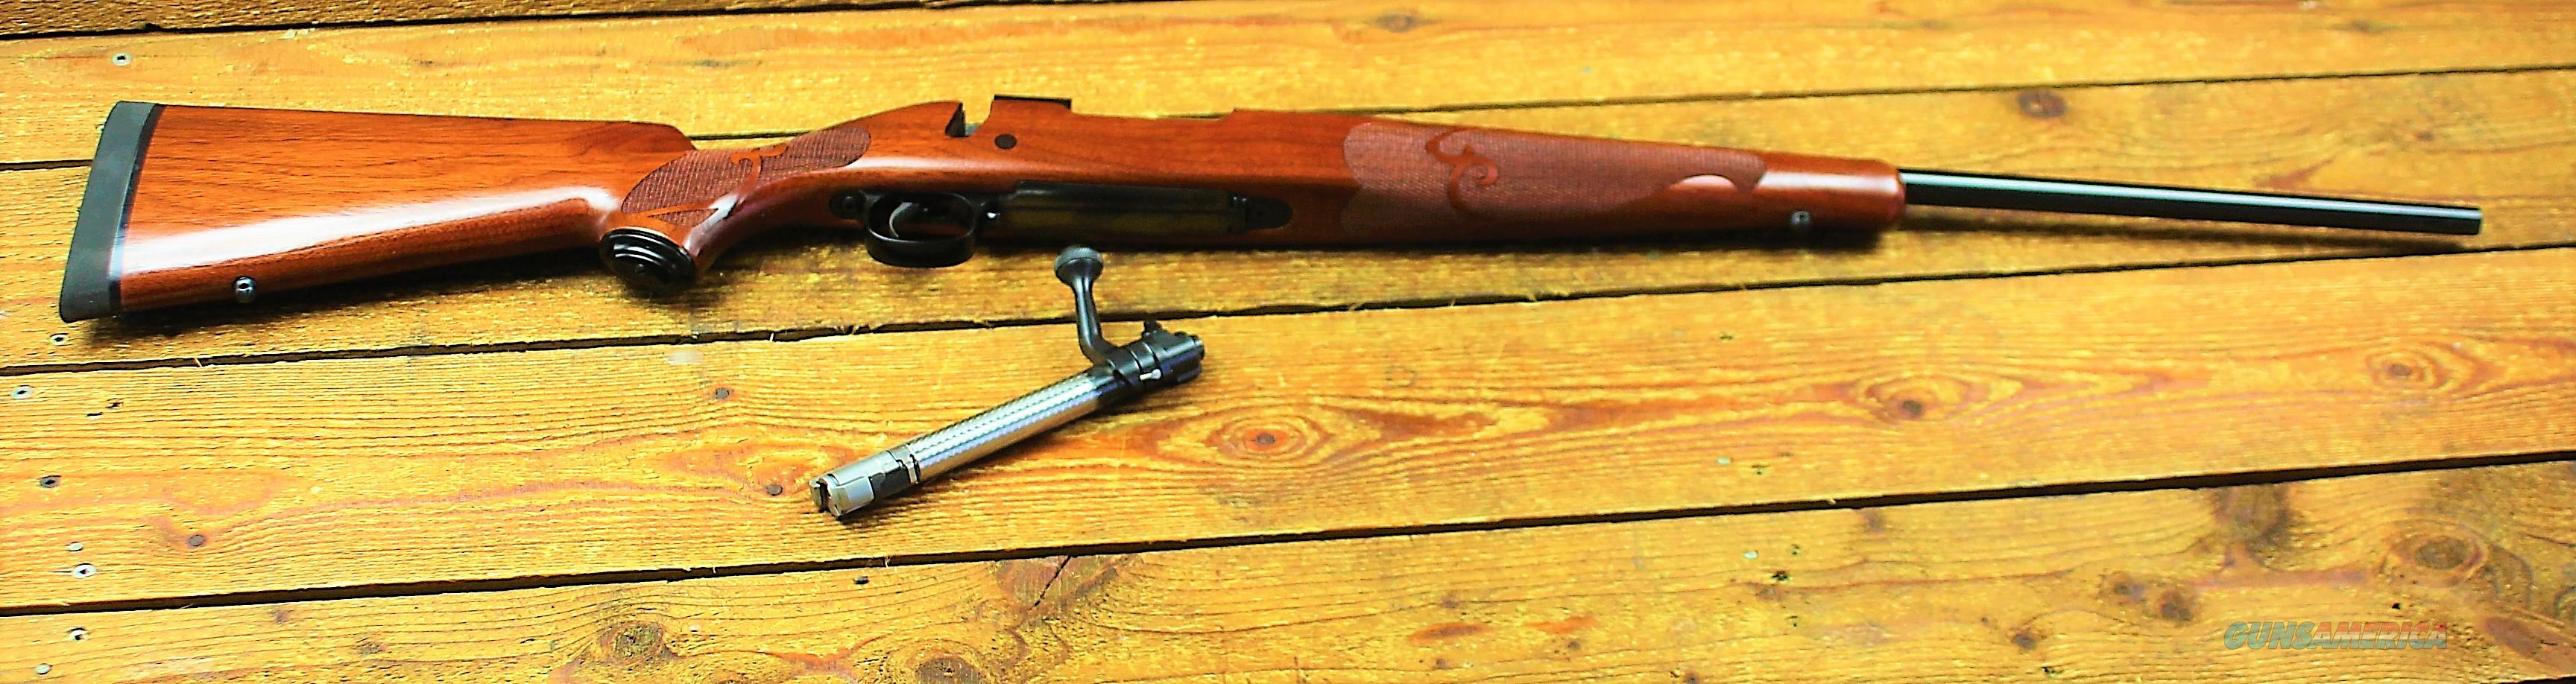 Winchester M70 Featherweight Bolt Action Rifle 535109220, 308 Winchester, 22 in, Walnut Stock, Blue Finish, 5 Rds EASY PAY LAYAWAY $74  Guns > Rifles > Winchester Rifles - Modern Bolt/Auto/Single > Model 70 > Post-64